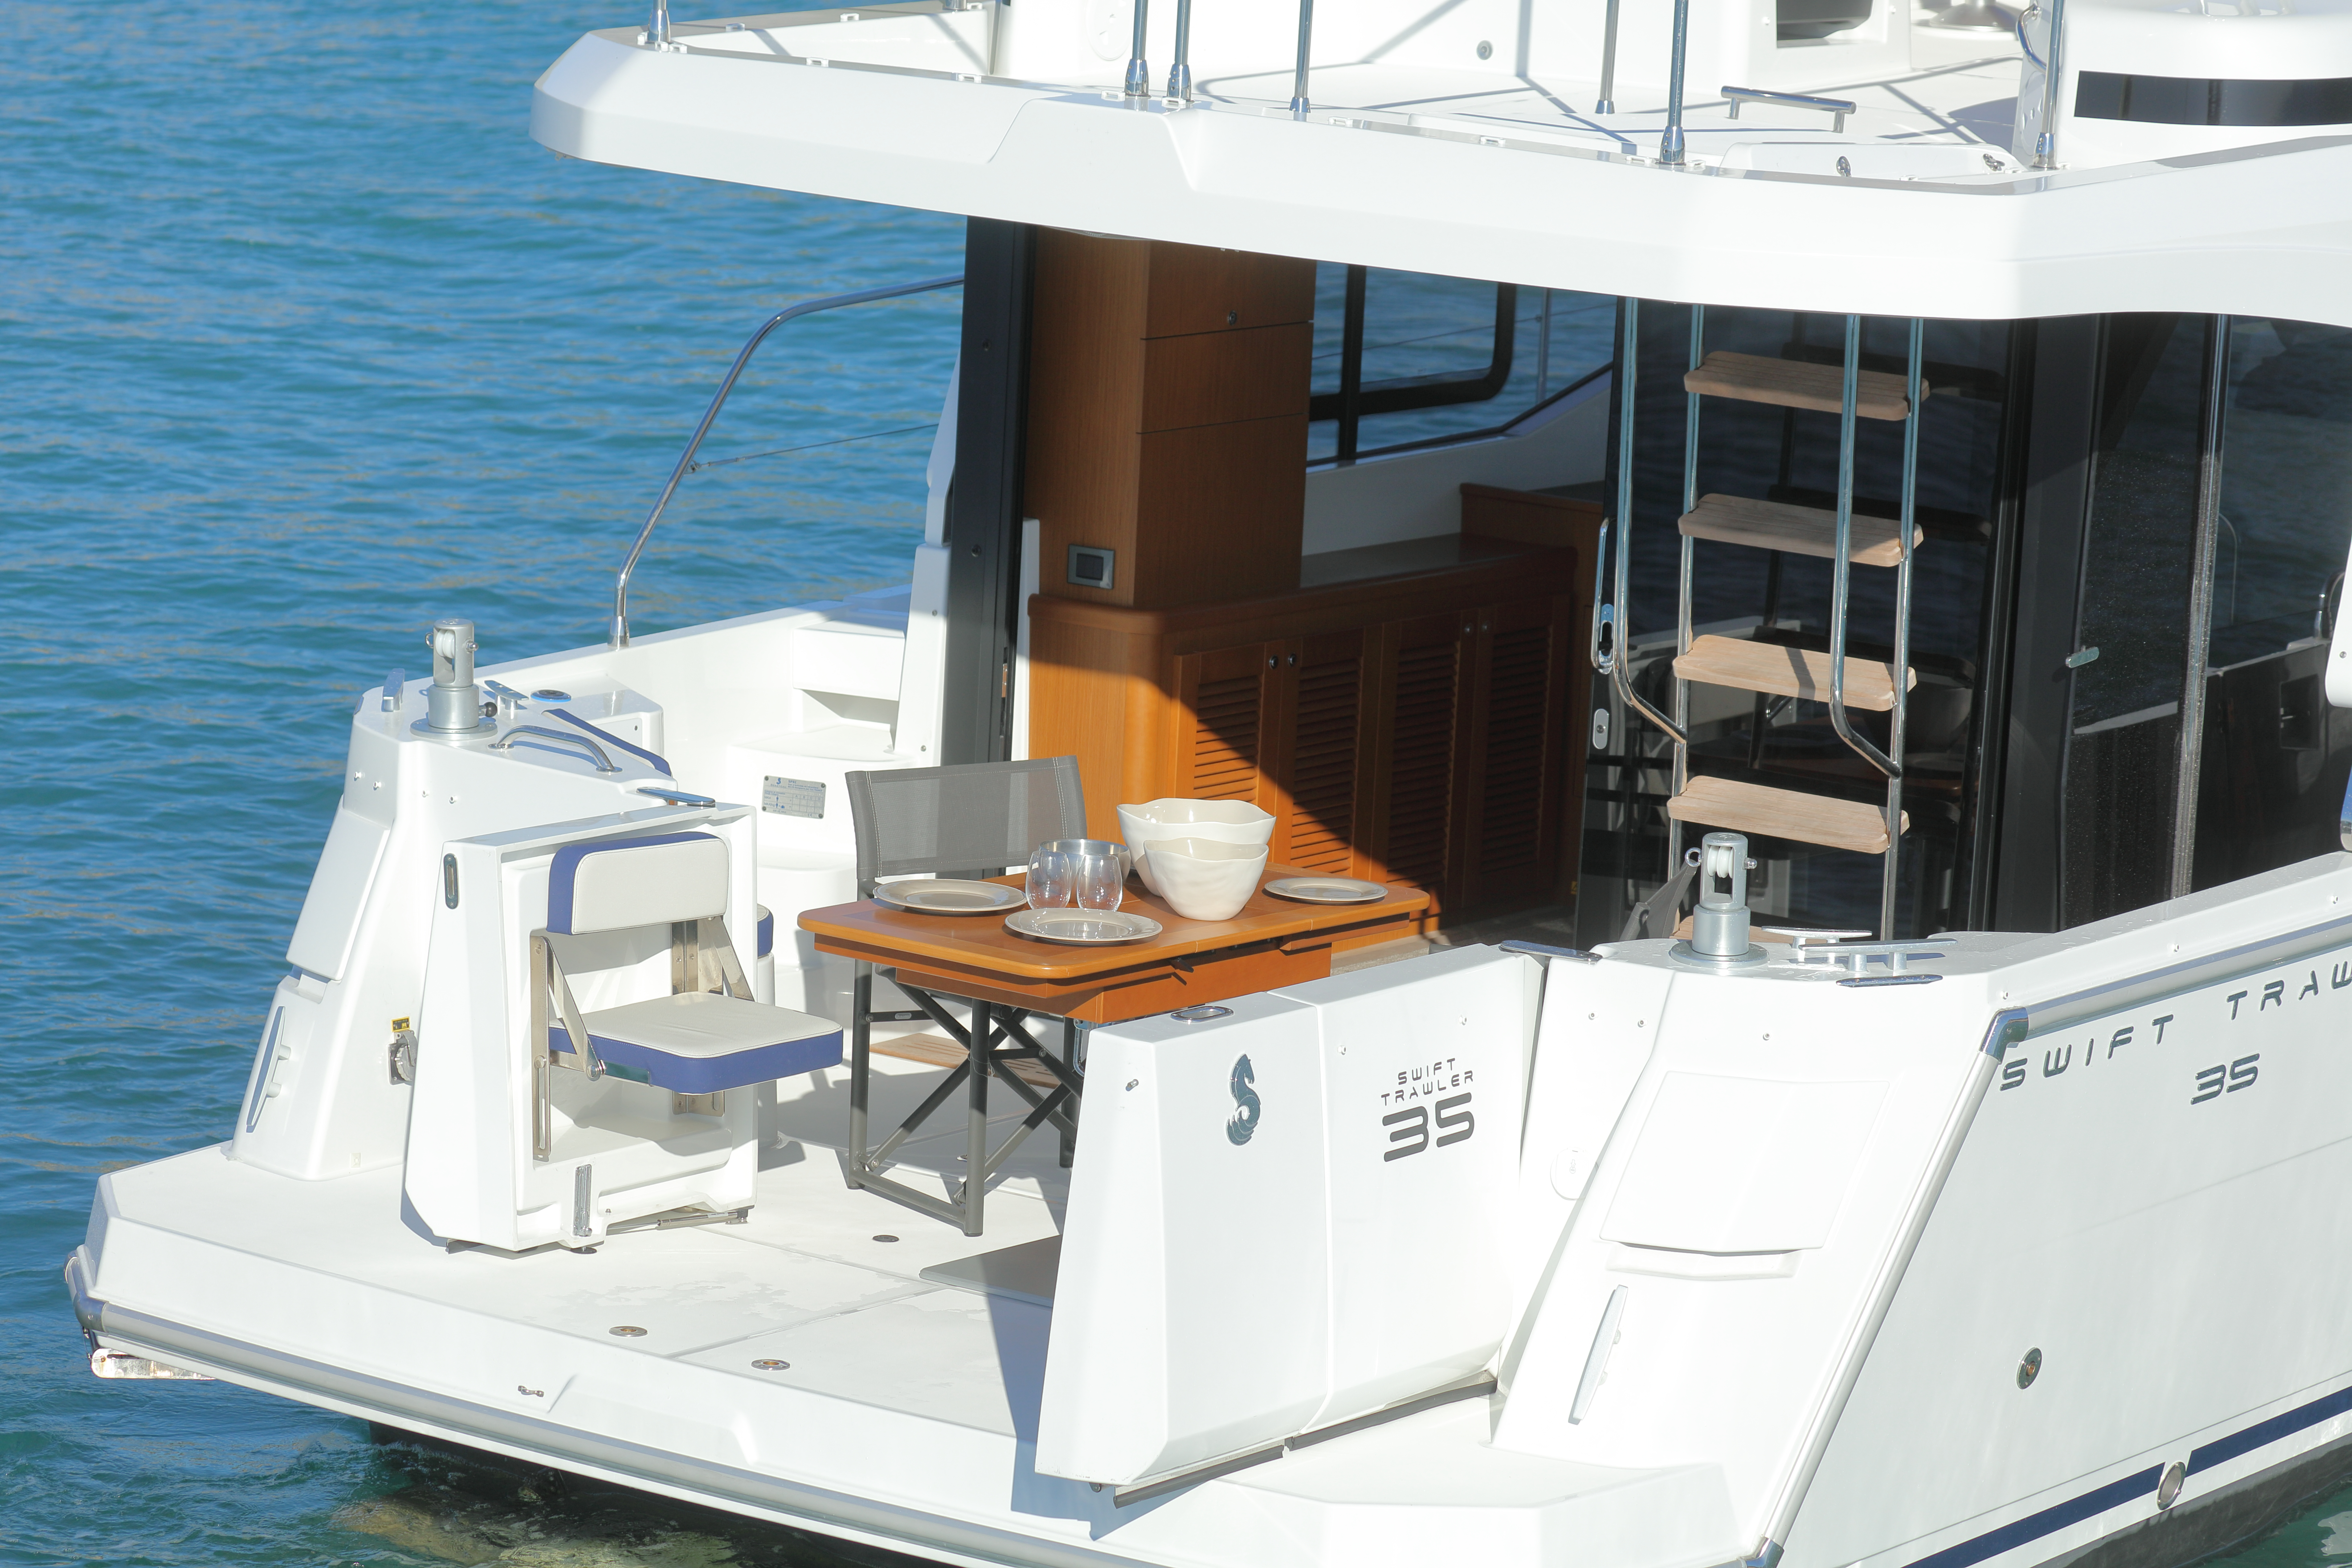 Beneteau Swift Trawler 35 Cockpit